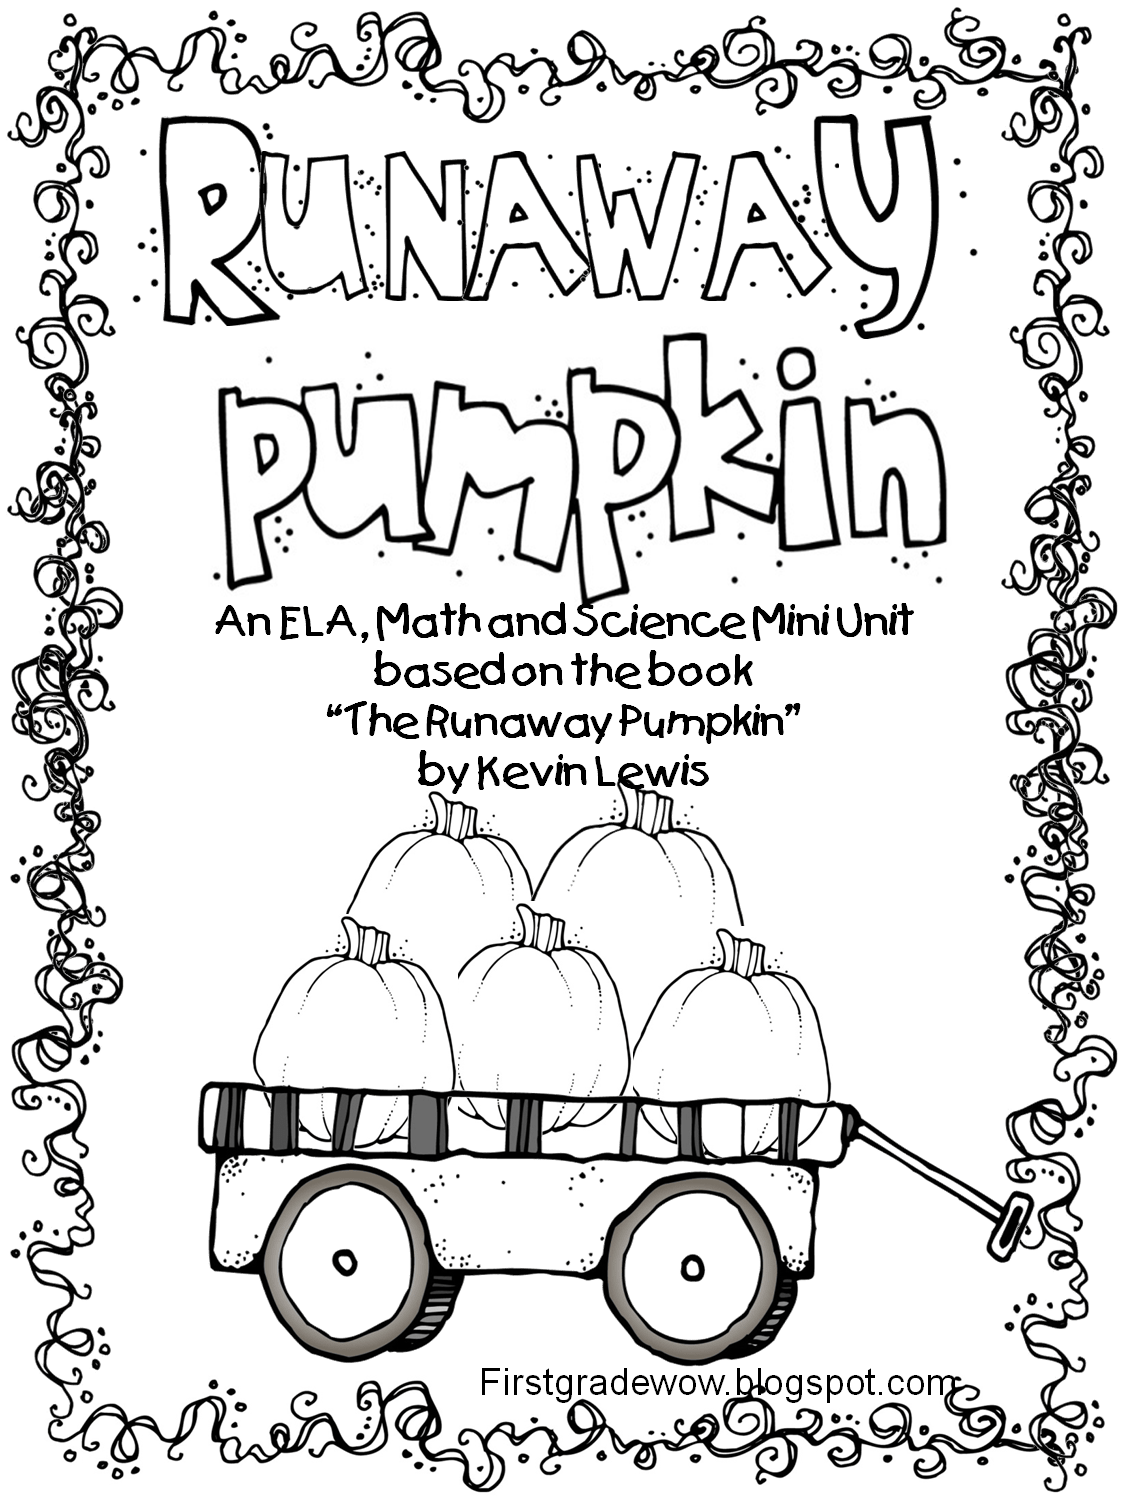 First Grade Wow Runaway Pumpkin